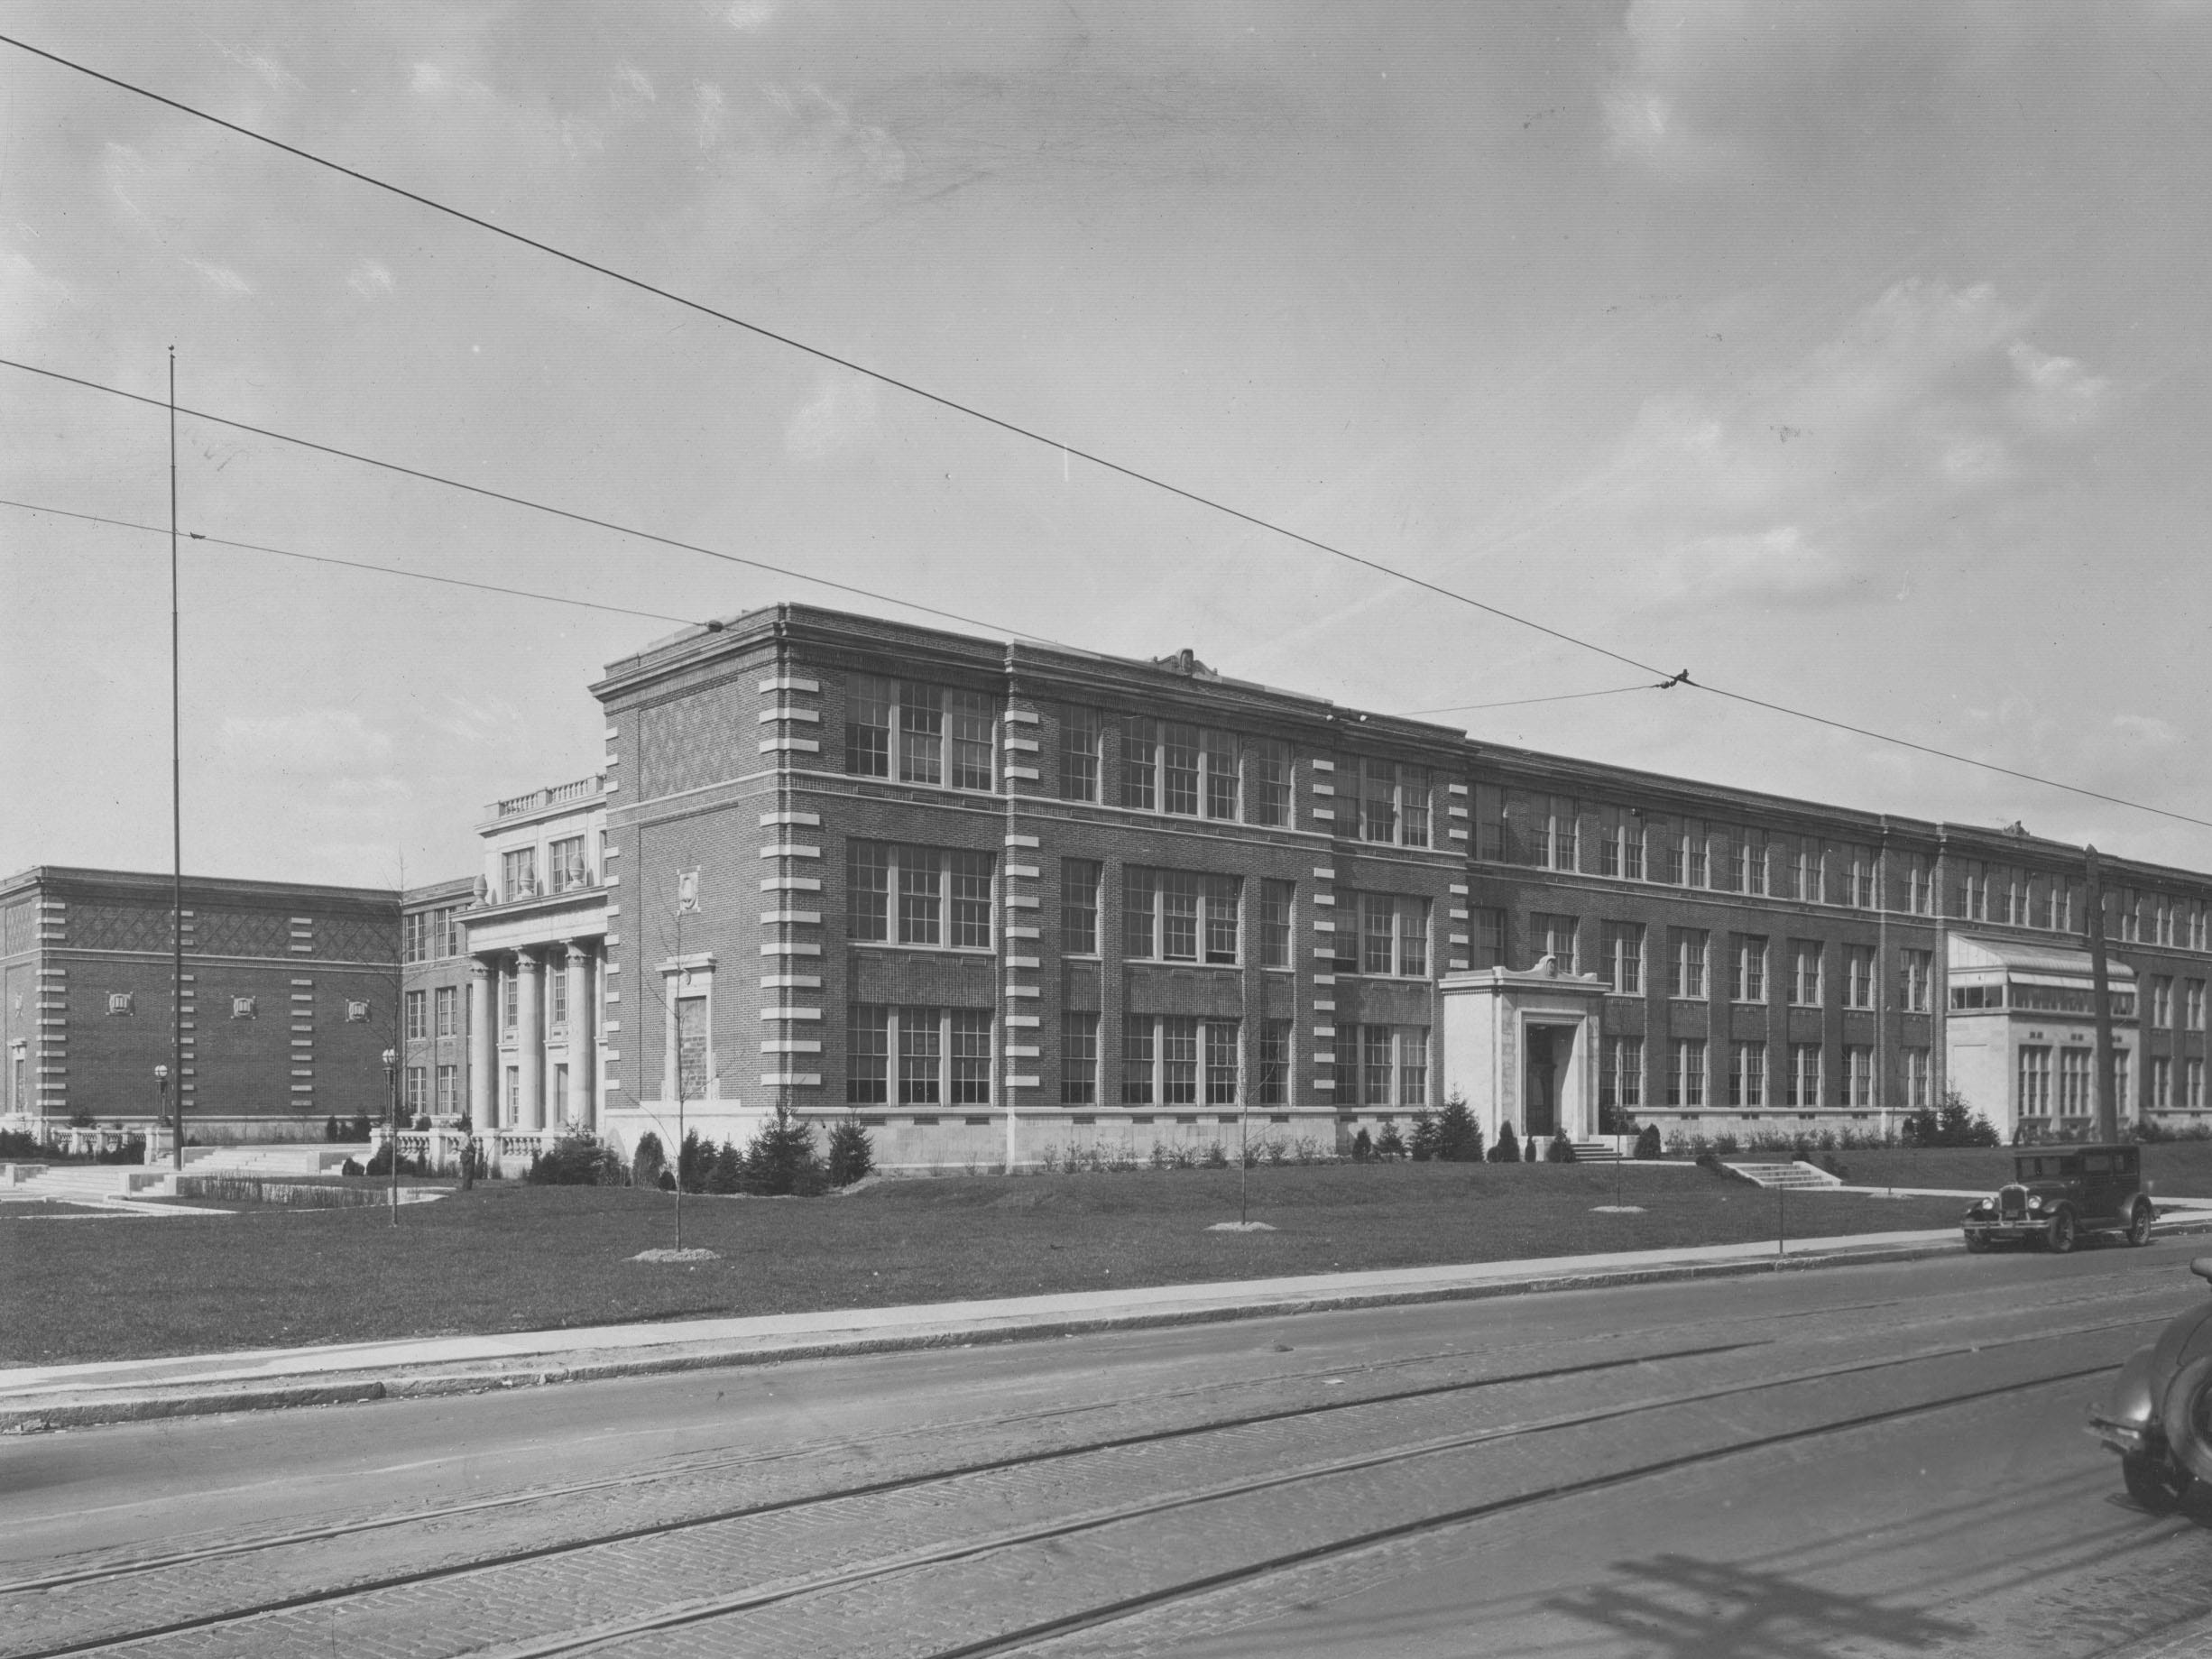 In 1928, Shortridge High School moved from downtown Indianapolis to a new building at 34th and Meridian Street on the north side of Indianapolis.